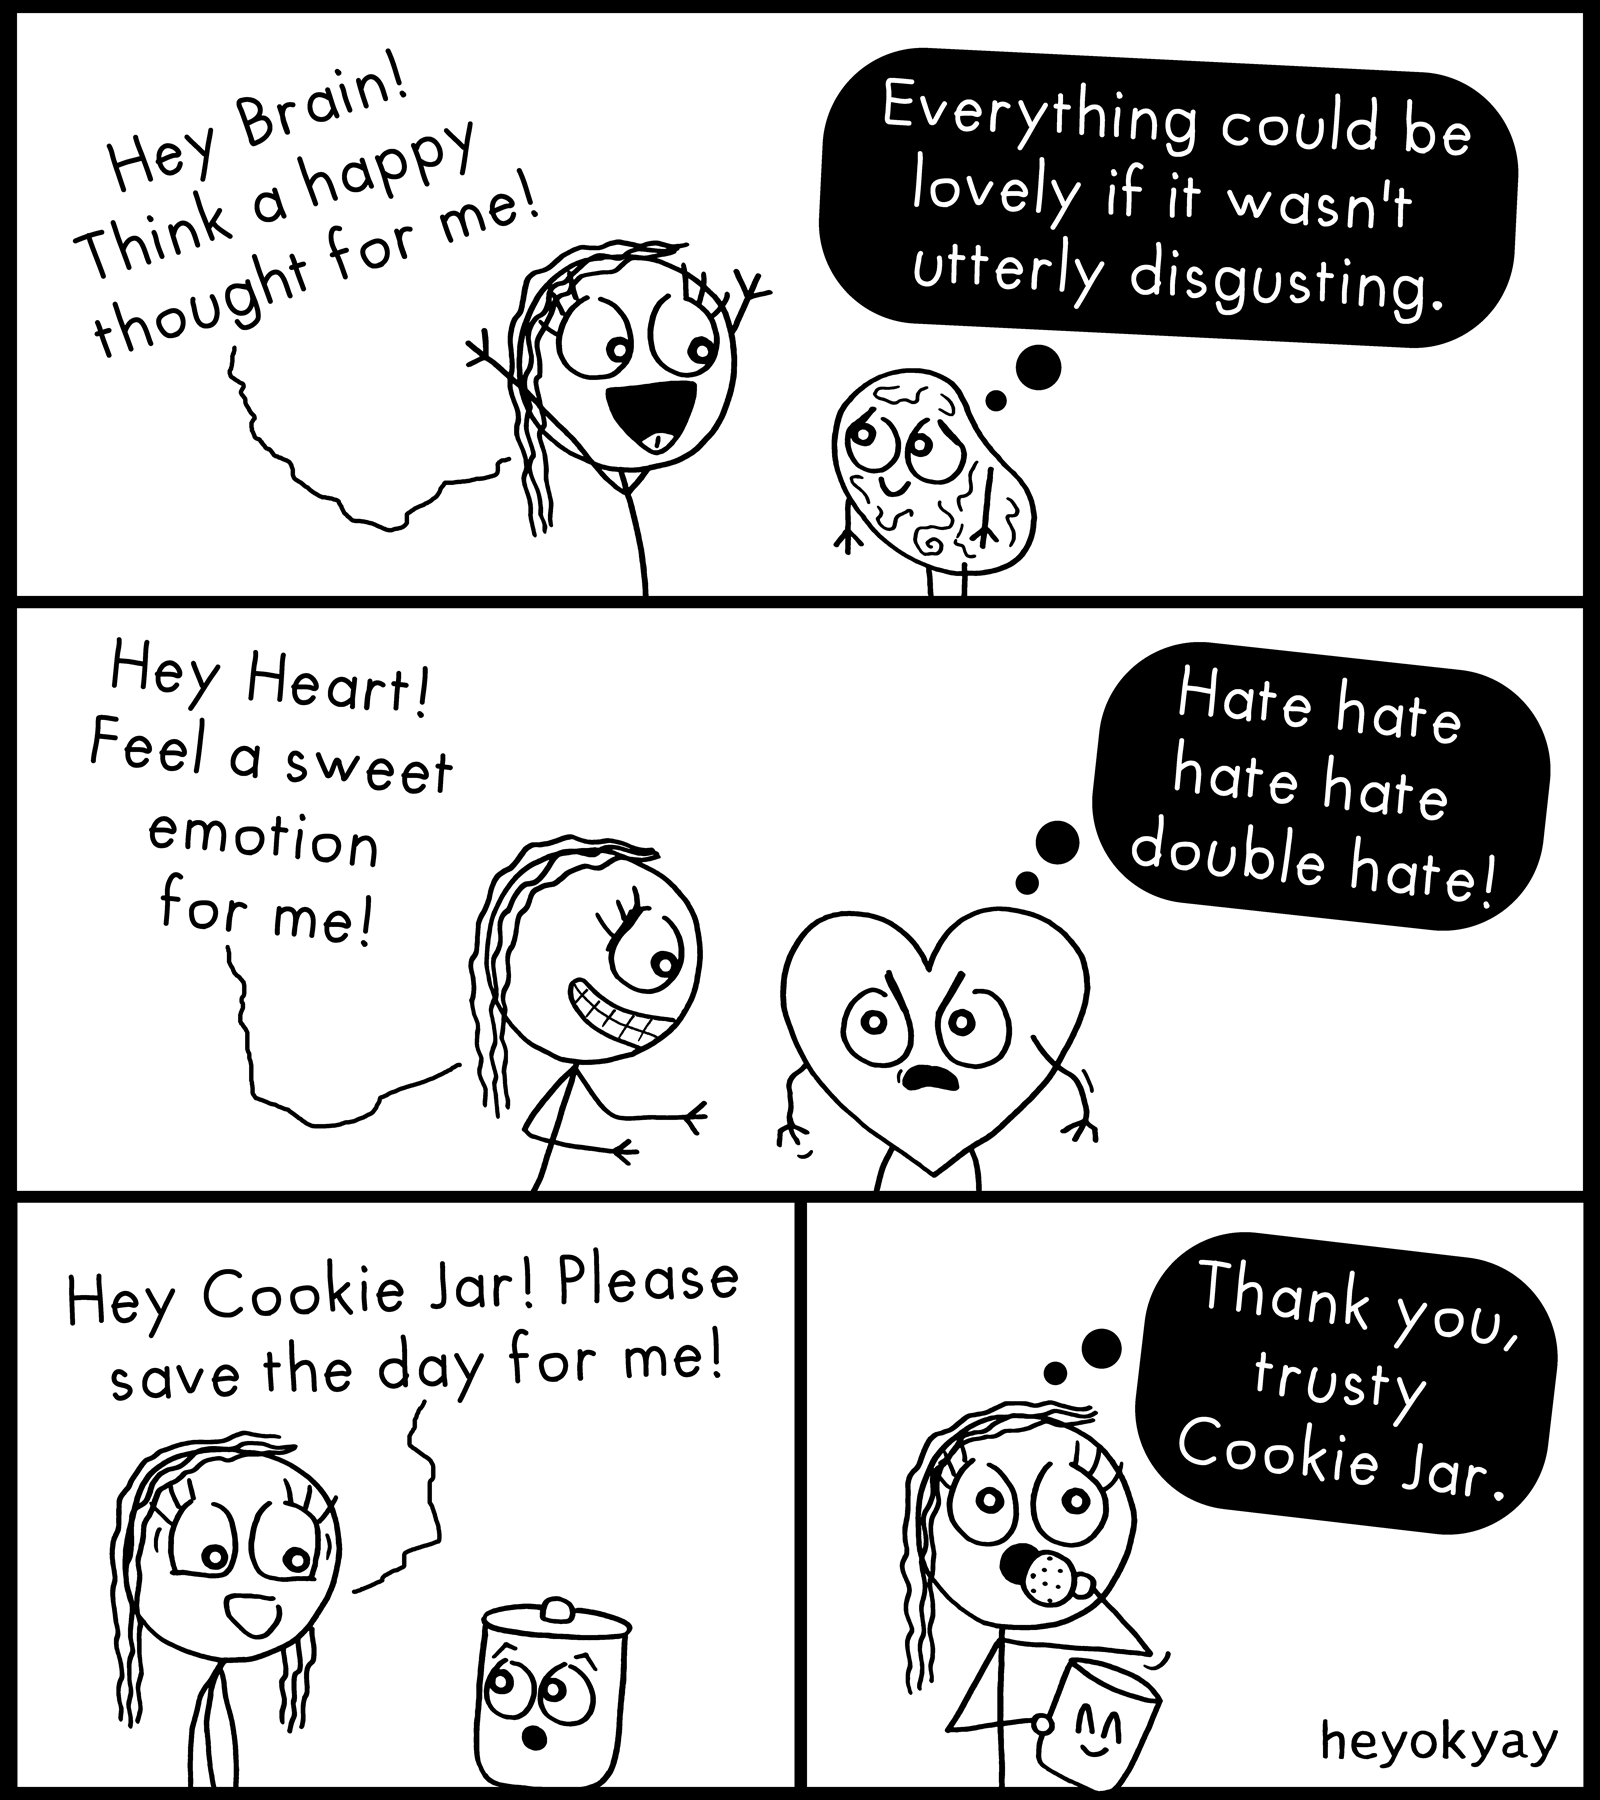 Happy heyokyay comic